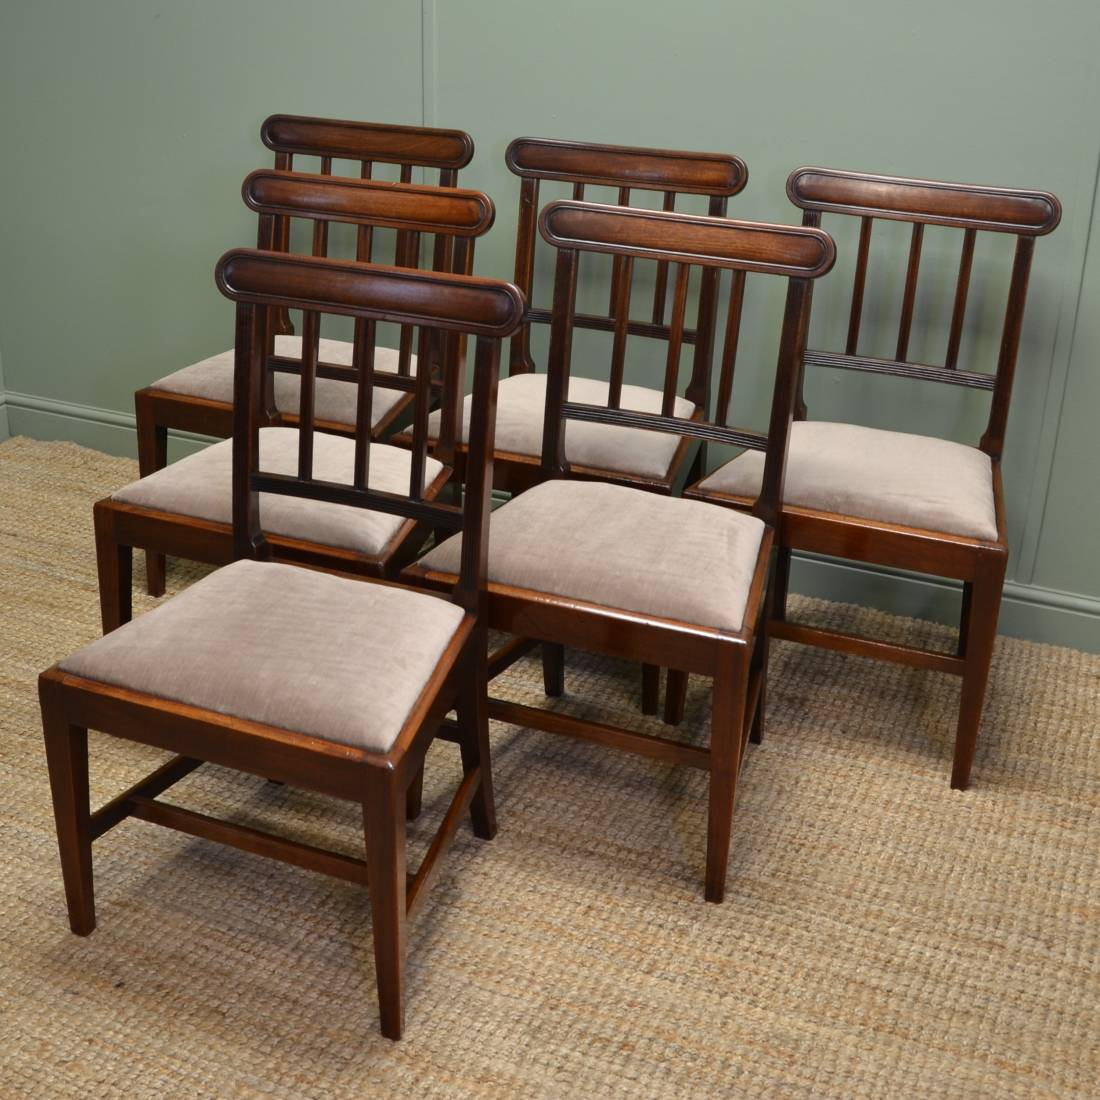 Antique Mahogany Dining Room Furniture: Quality Set Of Six Solid Mahogany Regency Antique Dining